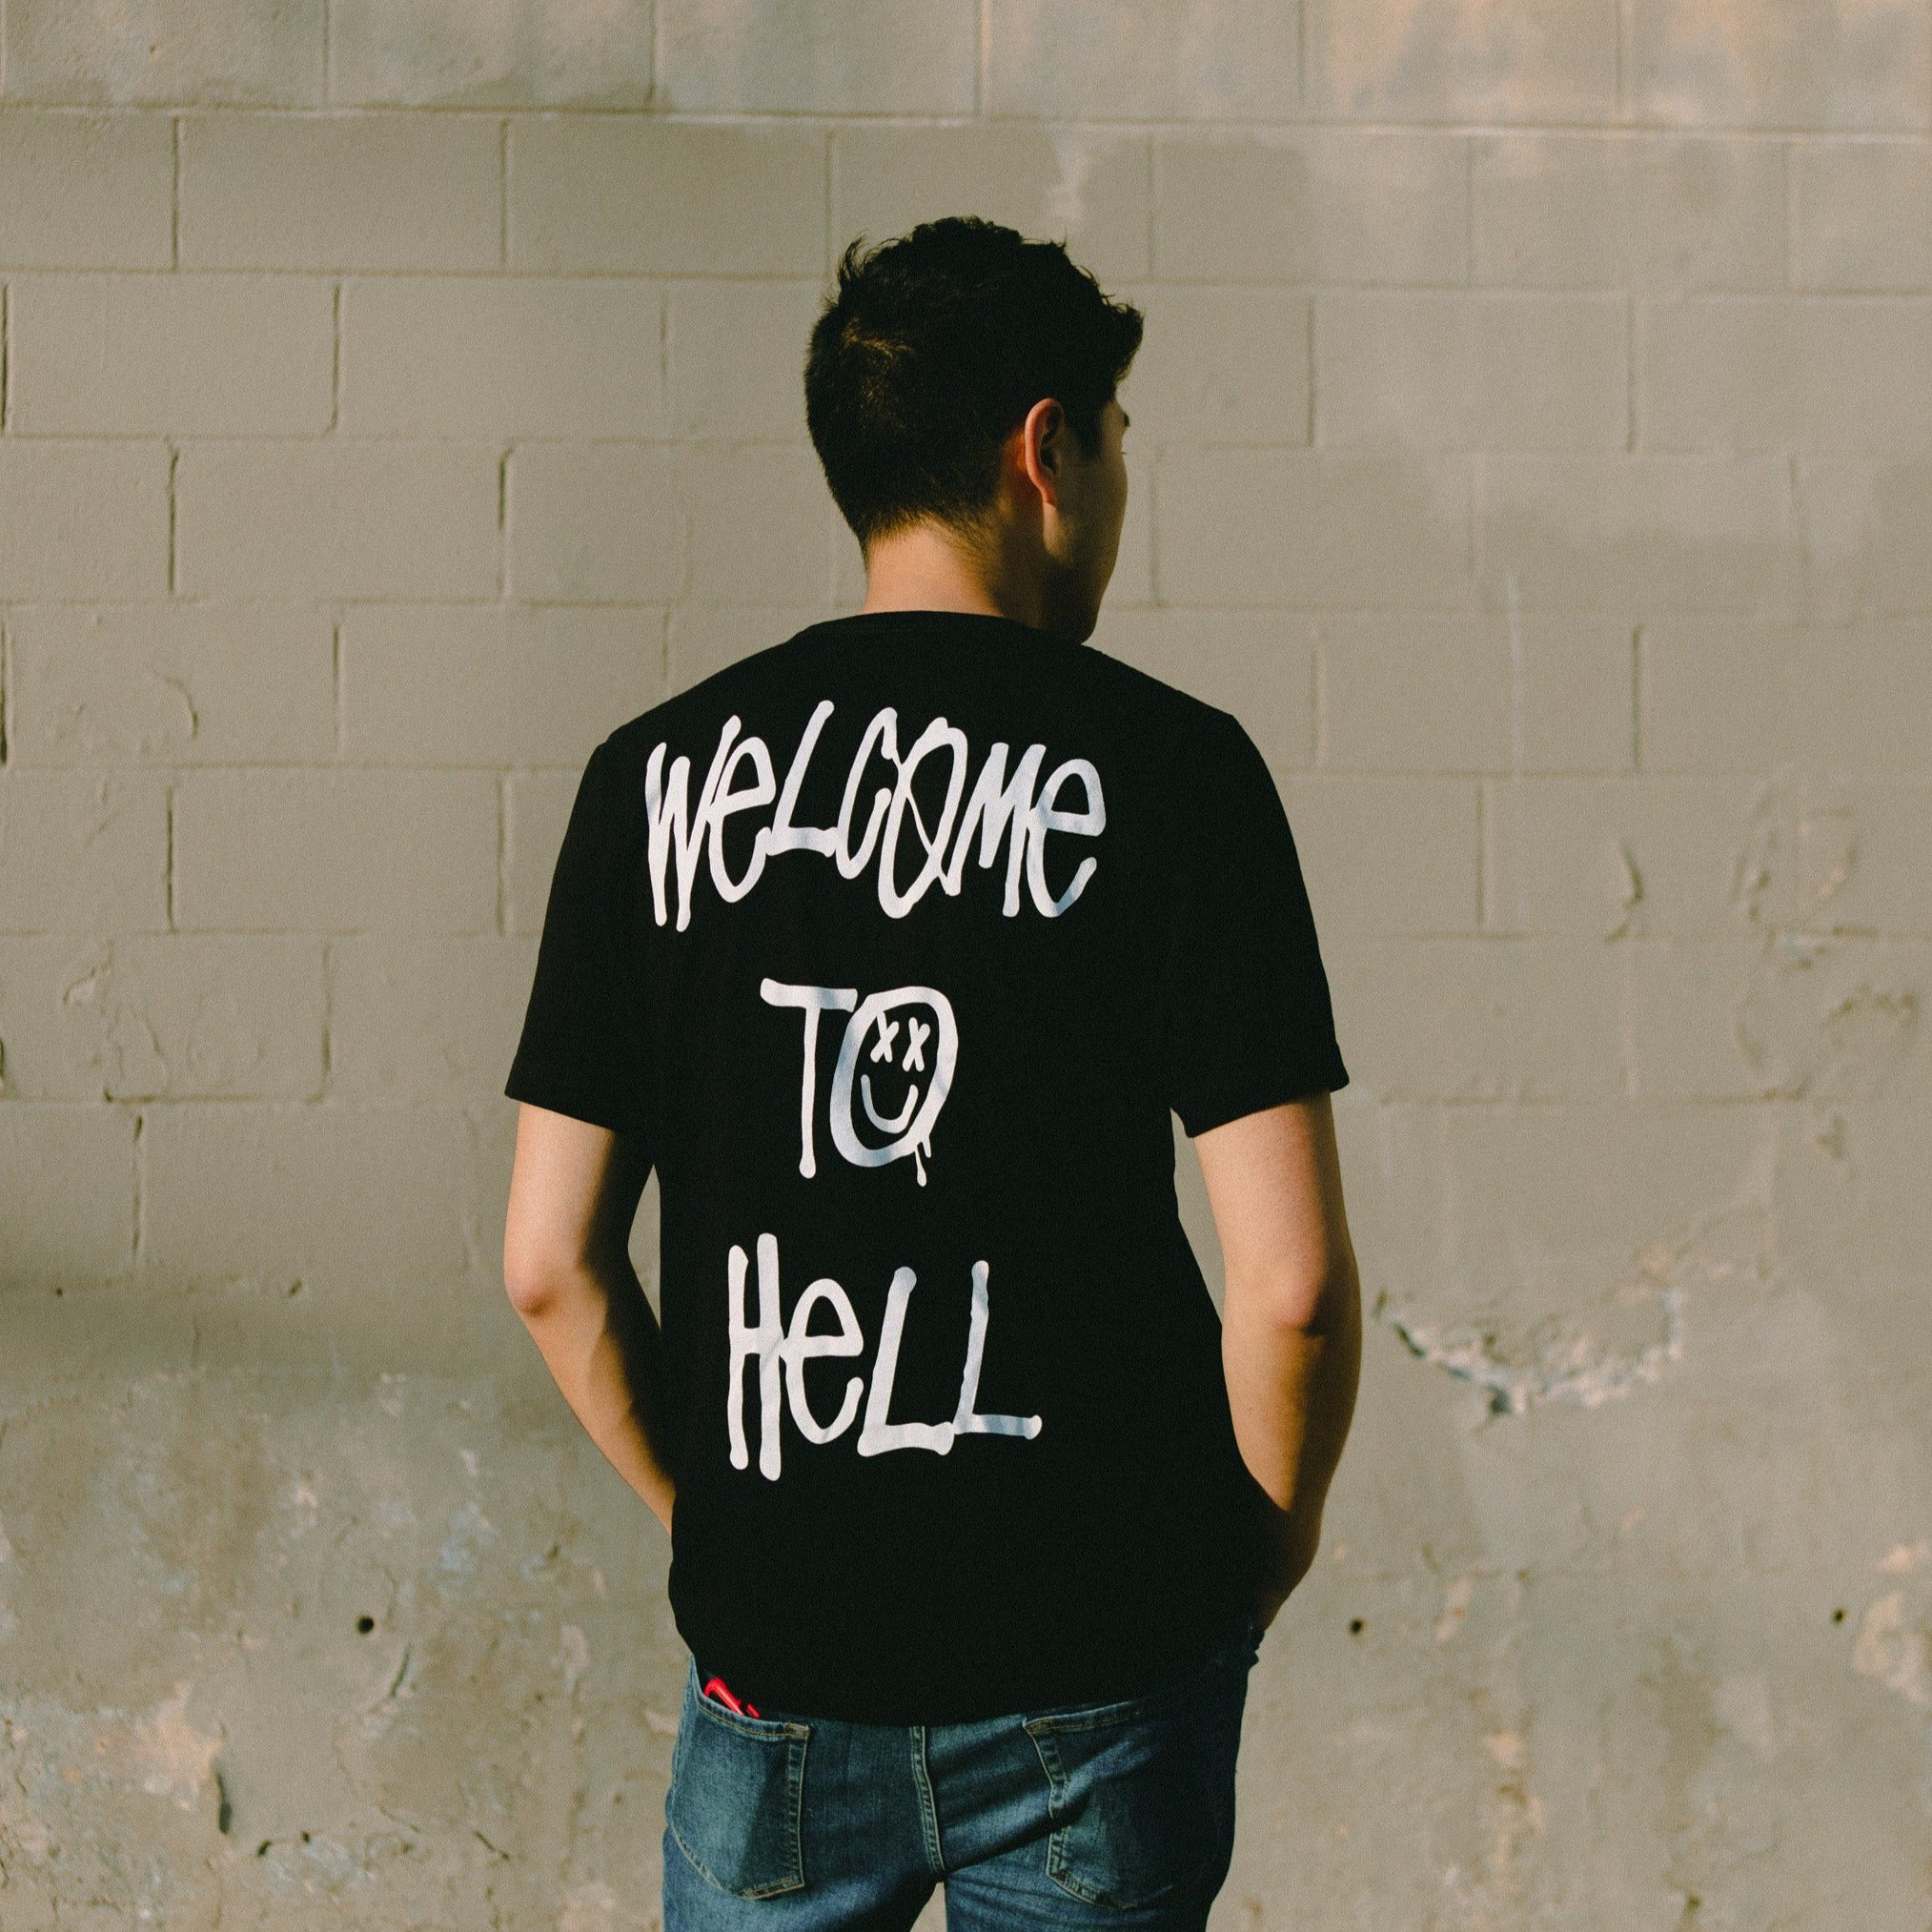 Welcome Heavyweight Tee (Limited Edition of 48)